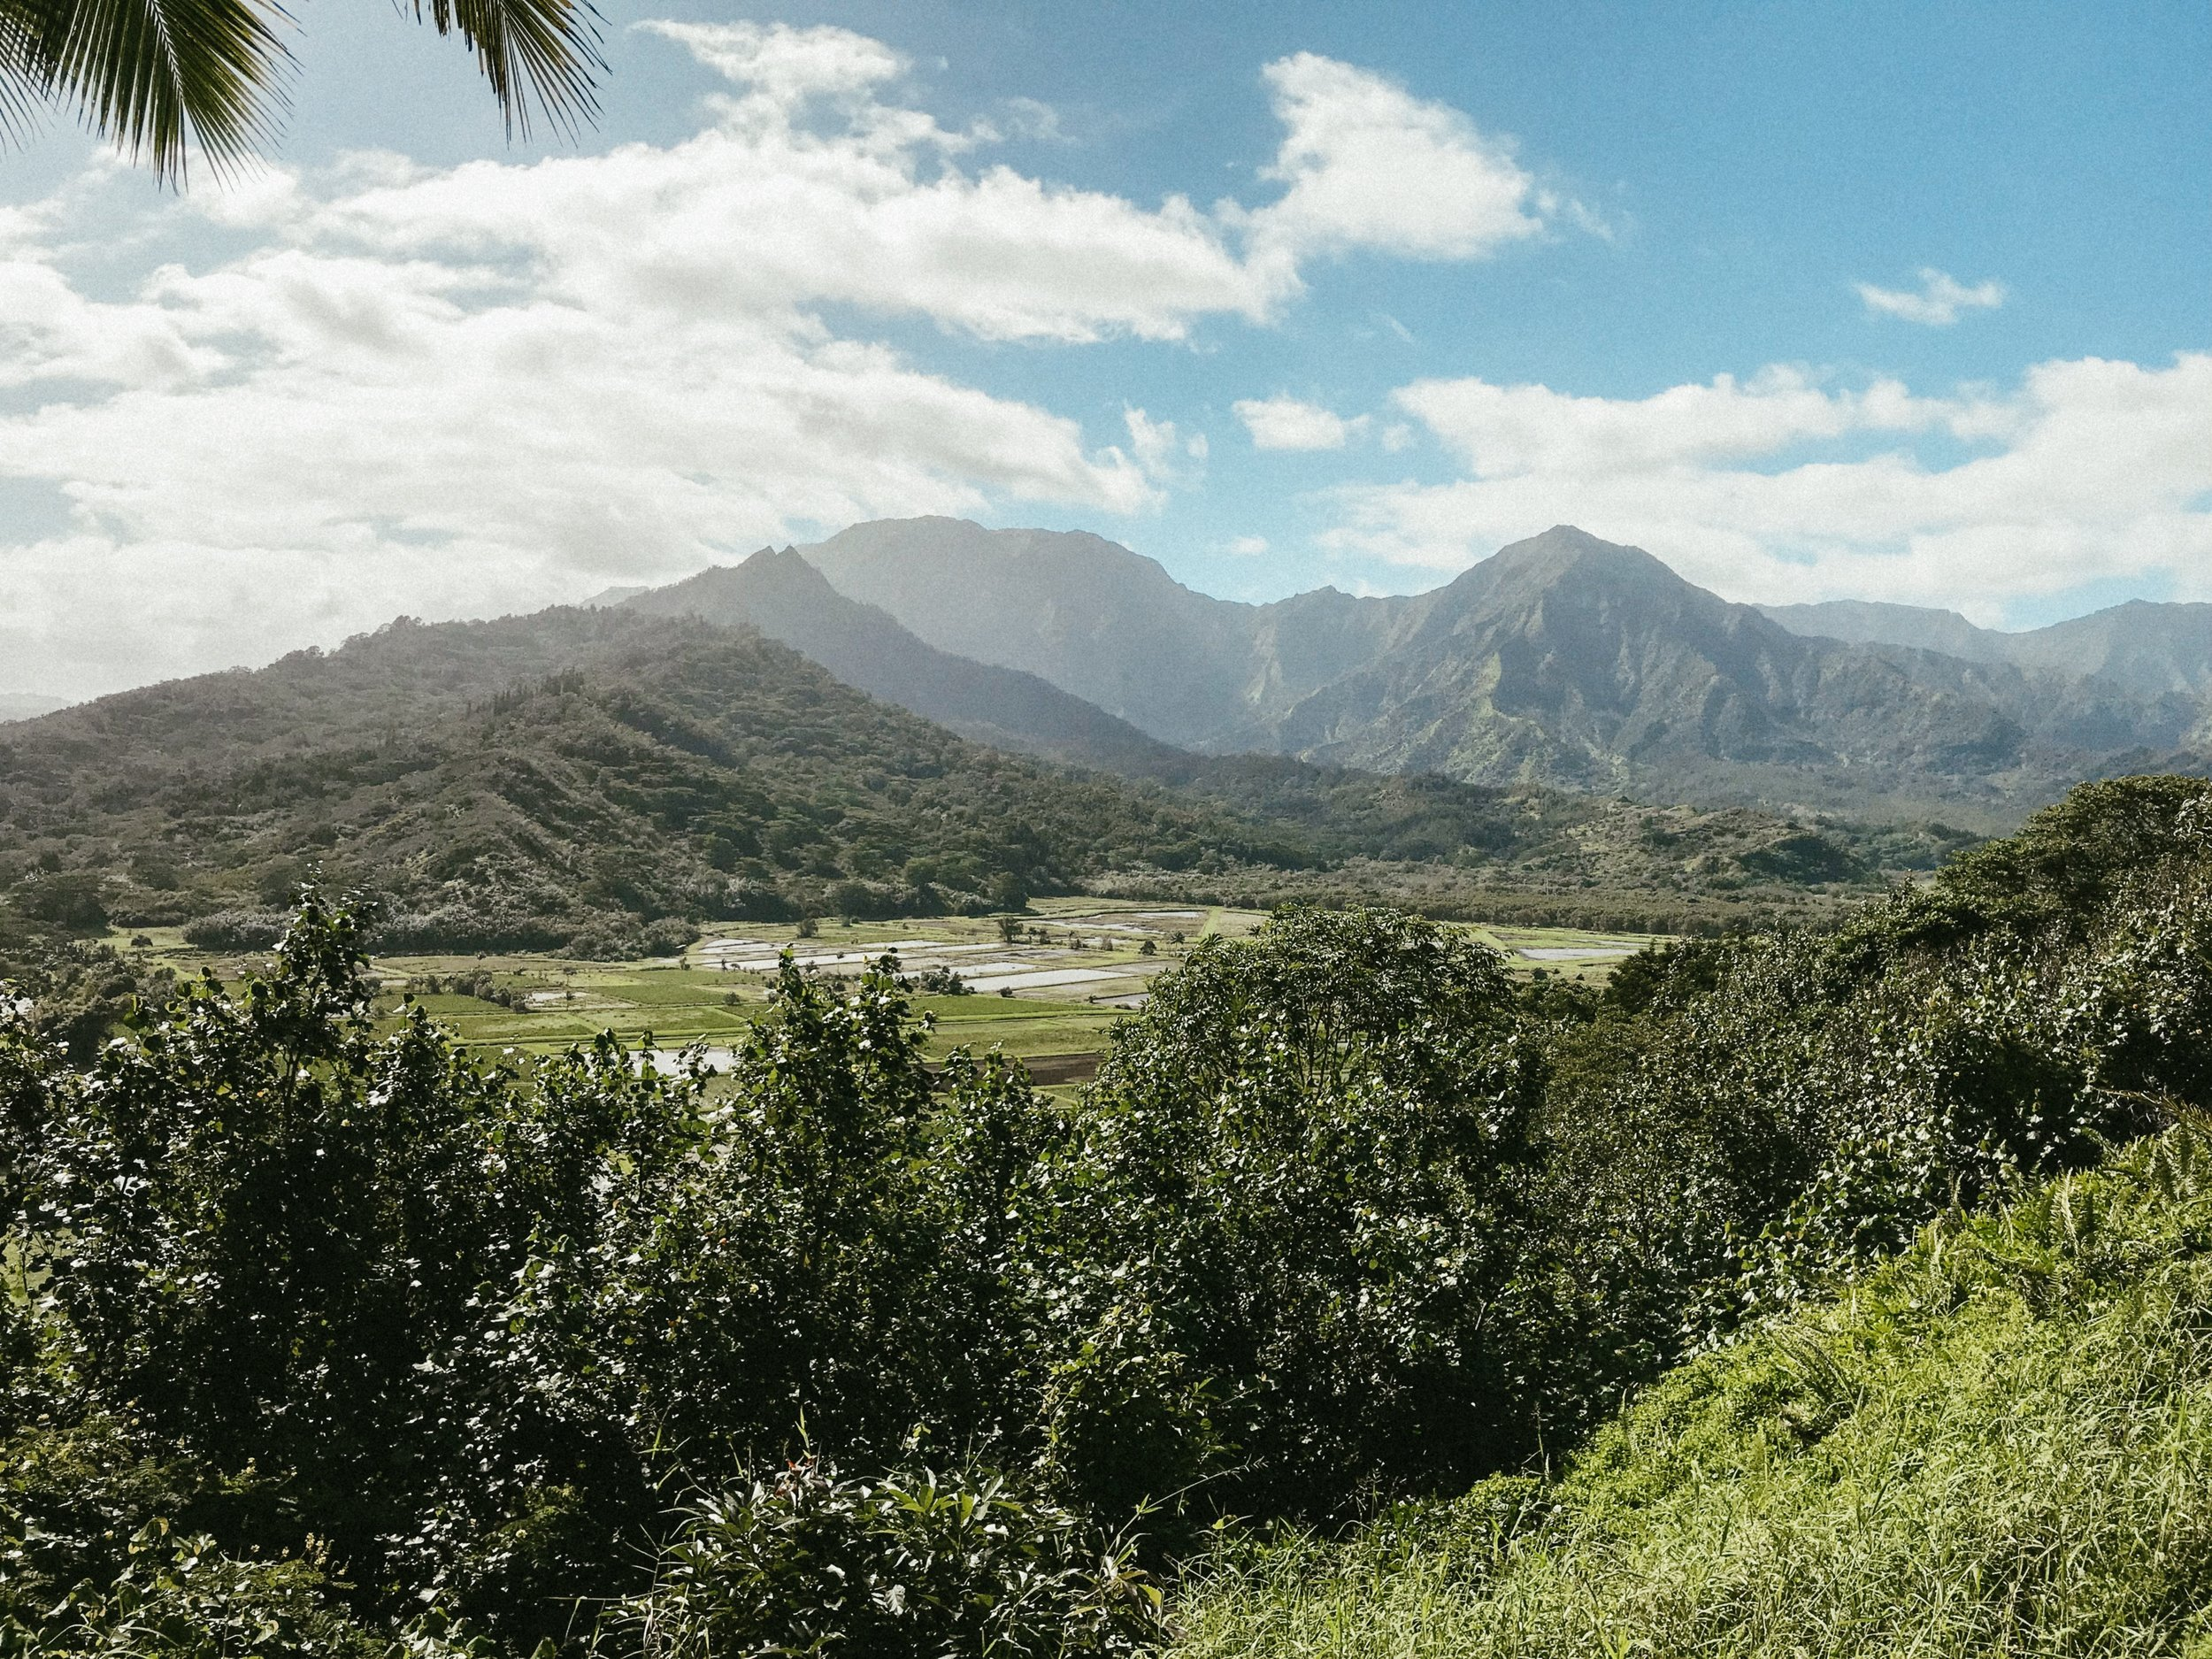 Midweek, we headed north to Hanalei. A pitstop at the Hanalei Valley Overlook was a great reason to stretch our legs and take some beautiful photos.